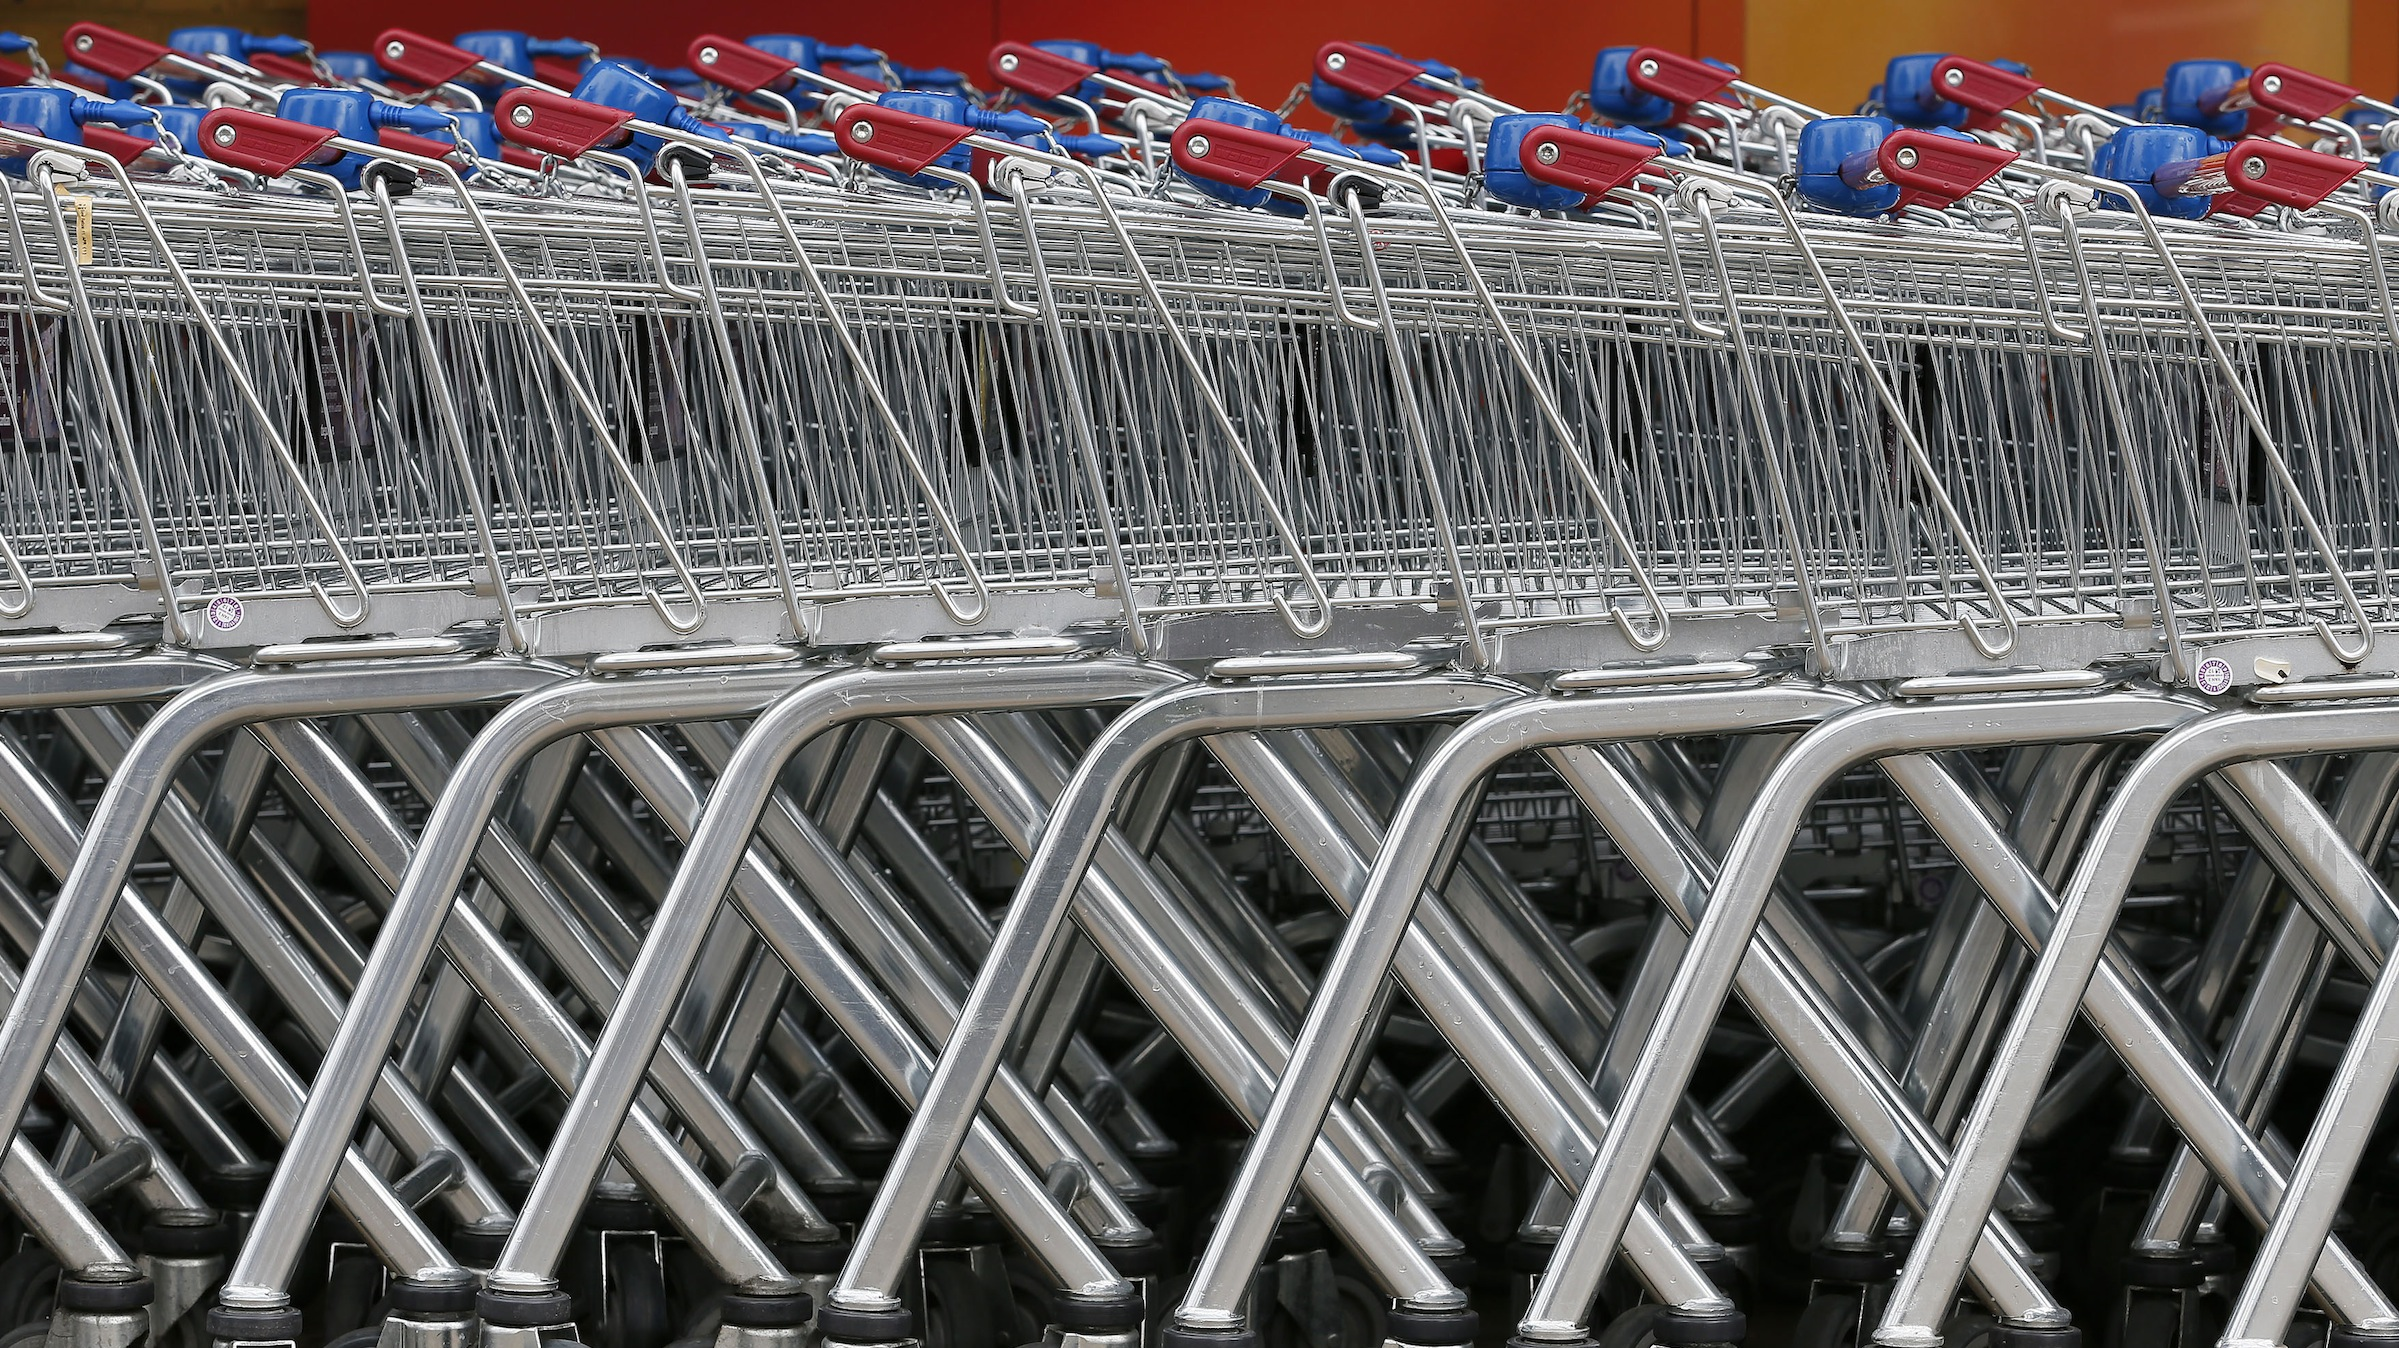 Shopping trolleys are seen parked at a Sainsbury's store in London May 8, 2013.    REUTERS/Stefan Wermuth  (BRITAIN - Tags: BUSINESS FOOD) - RTXZELW